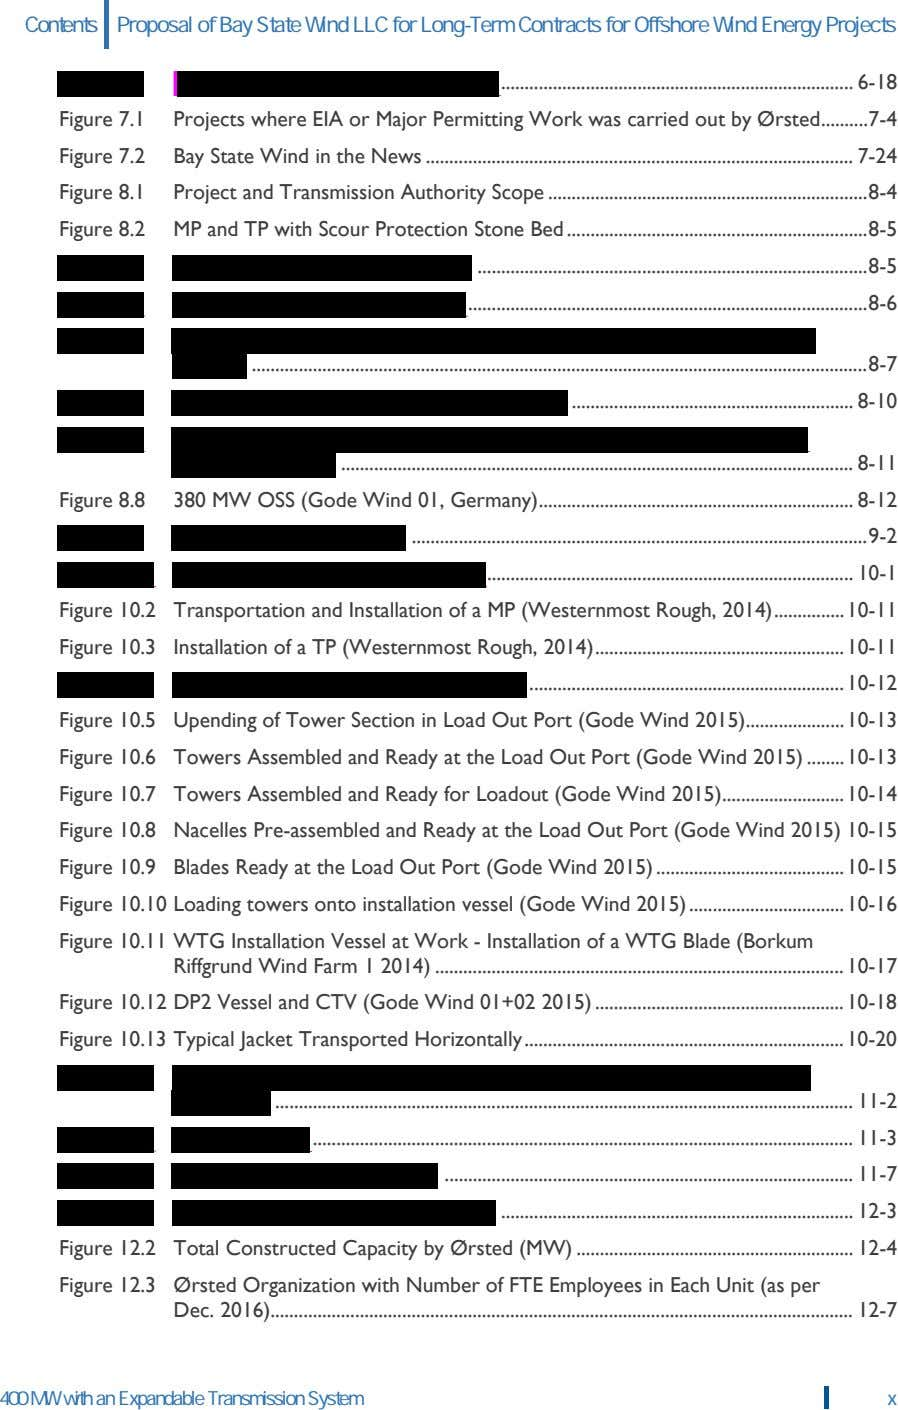 Contents Proposal of Bay State Wind LLC for Long-Term Contracts for Offshore Wind Energy Projects